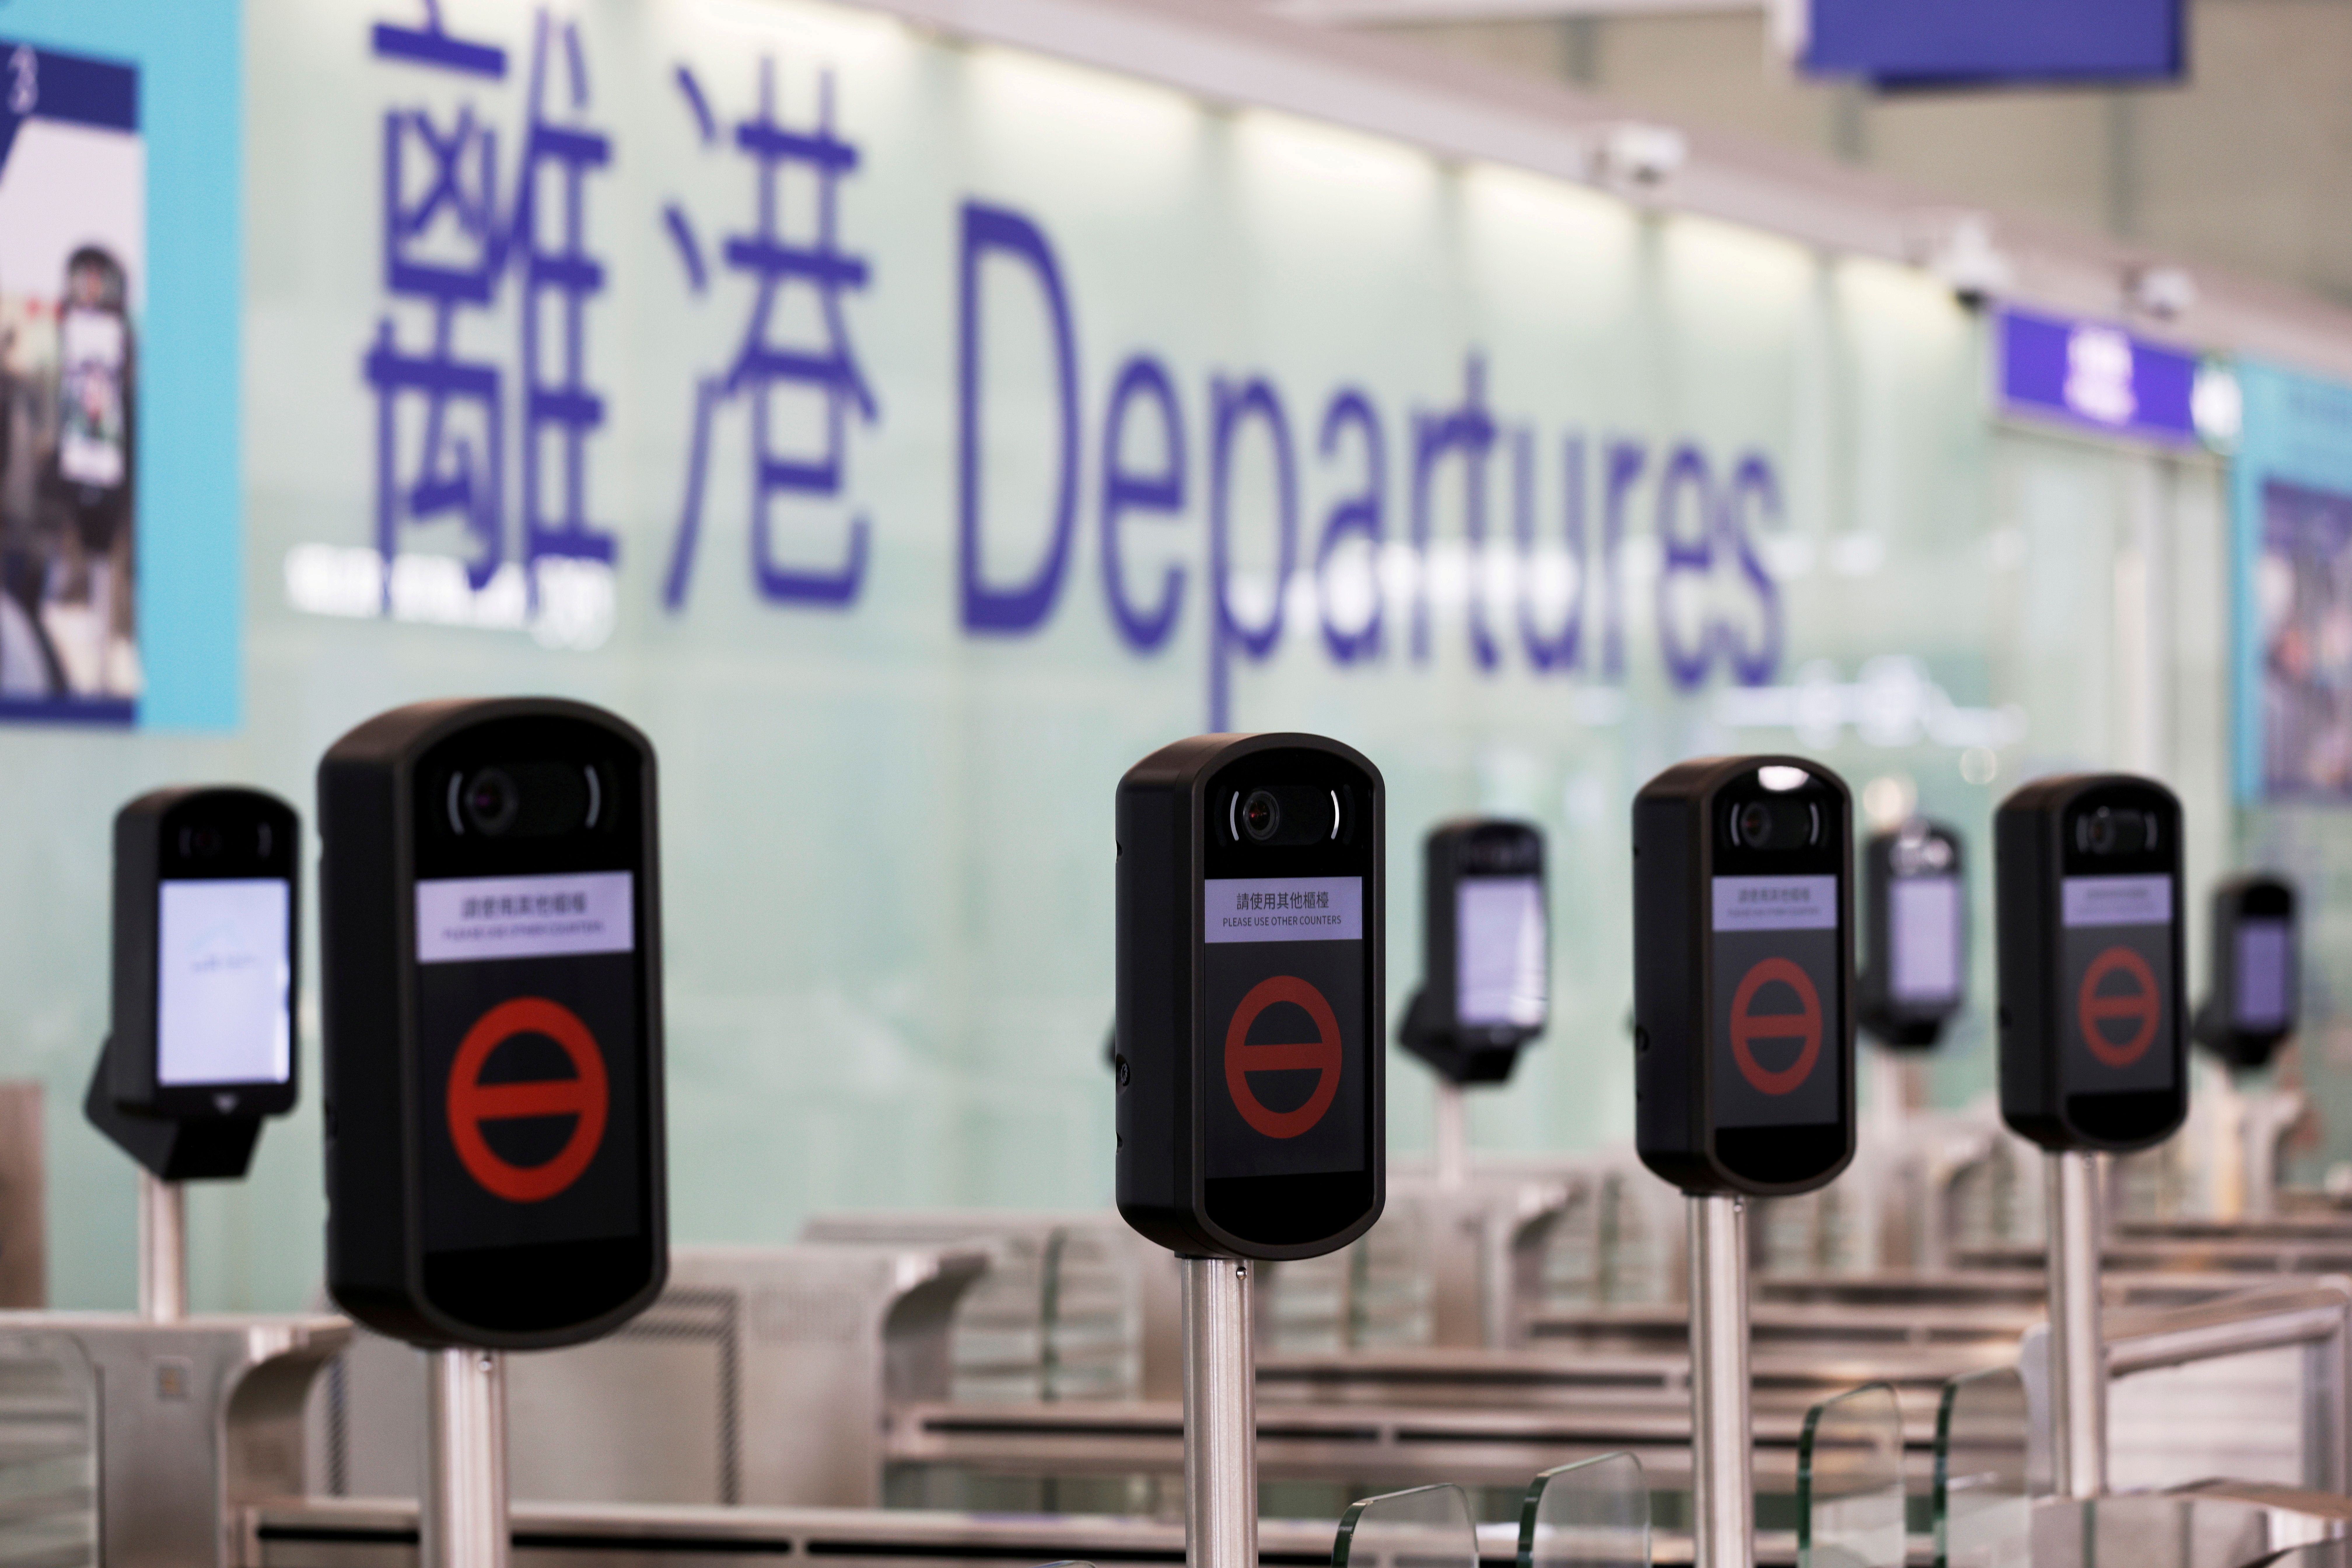 FILE PHOTO: Closed counters are seen at the departures hall of Hong Kong International Airport, following the coronavirus disease (COVID-19) outbreak, in Hong Kong, China February 2, 2021. REUTERS/Tyrone Siu